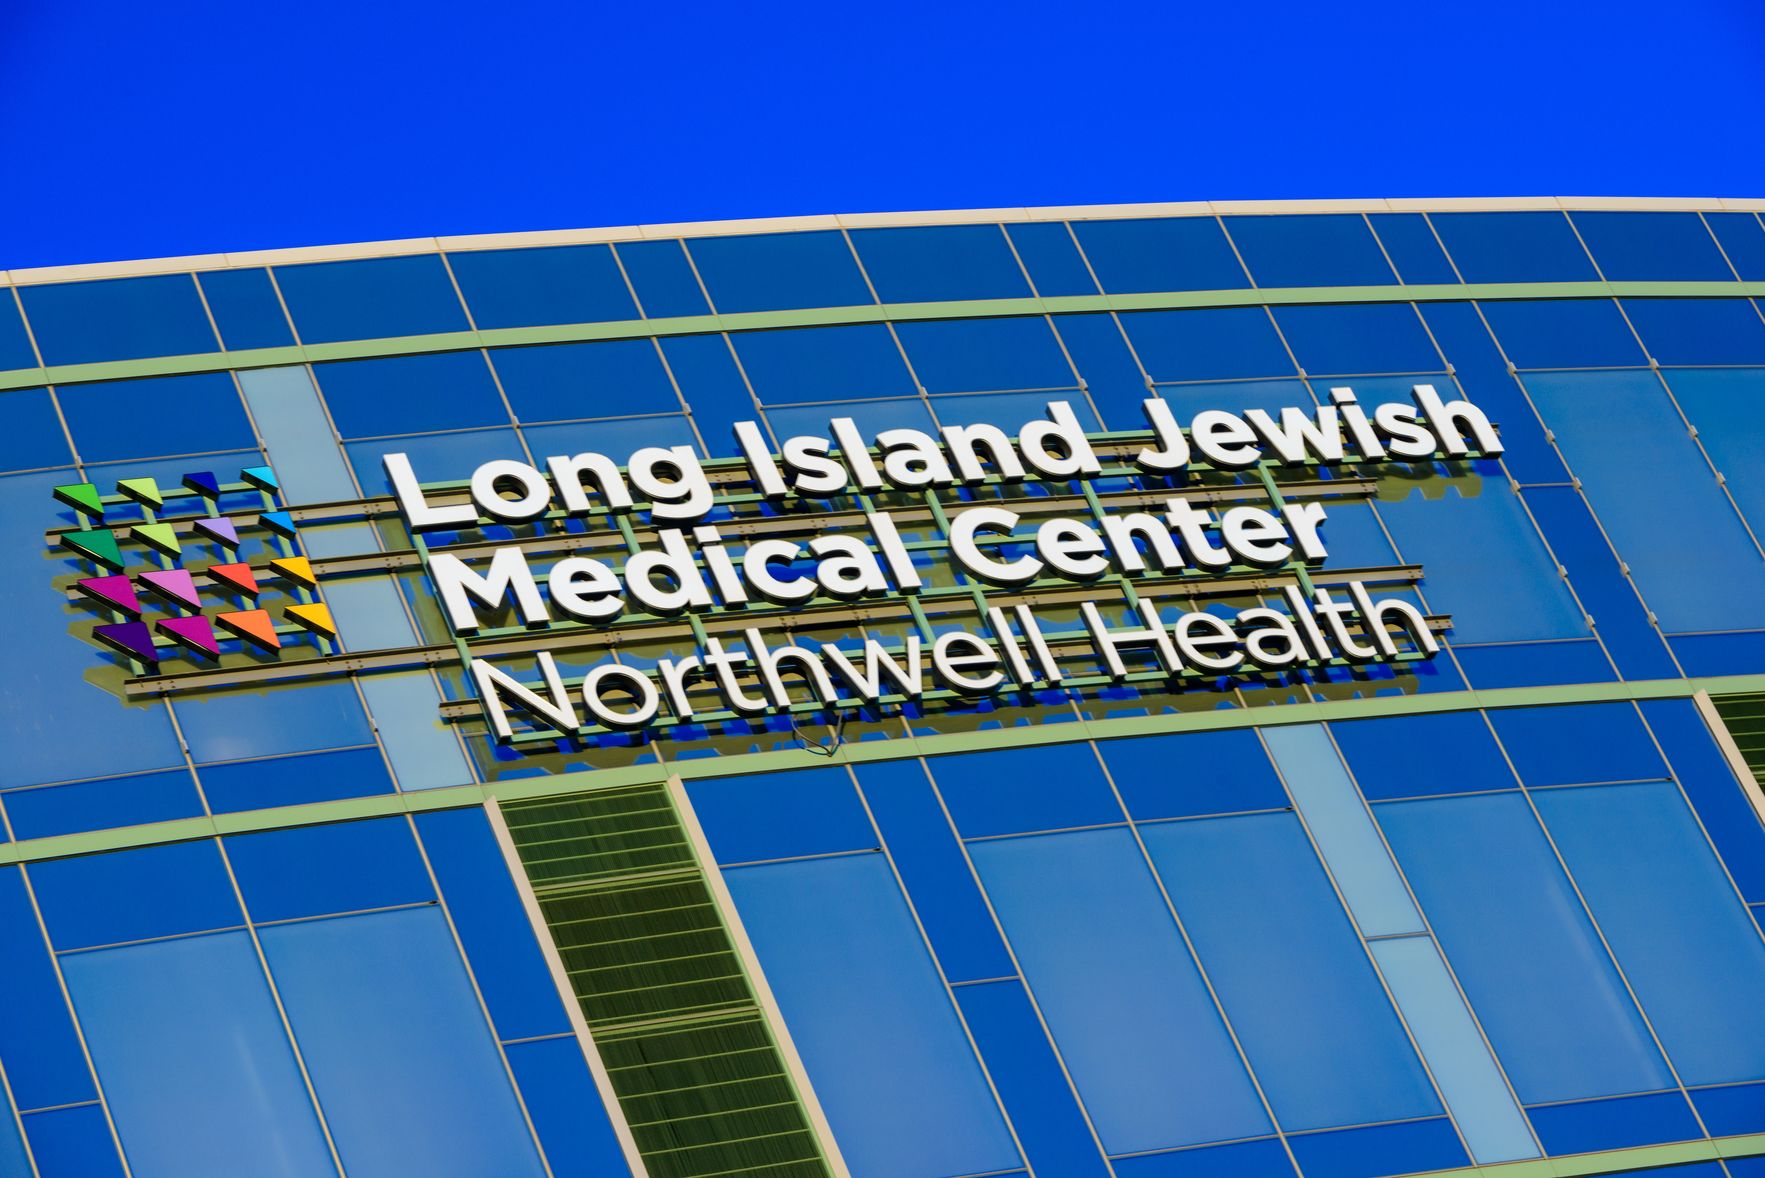 Outside Long Island Jewish Medical Center